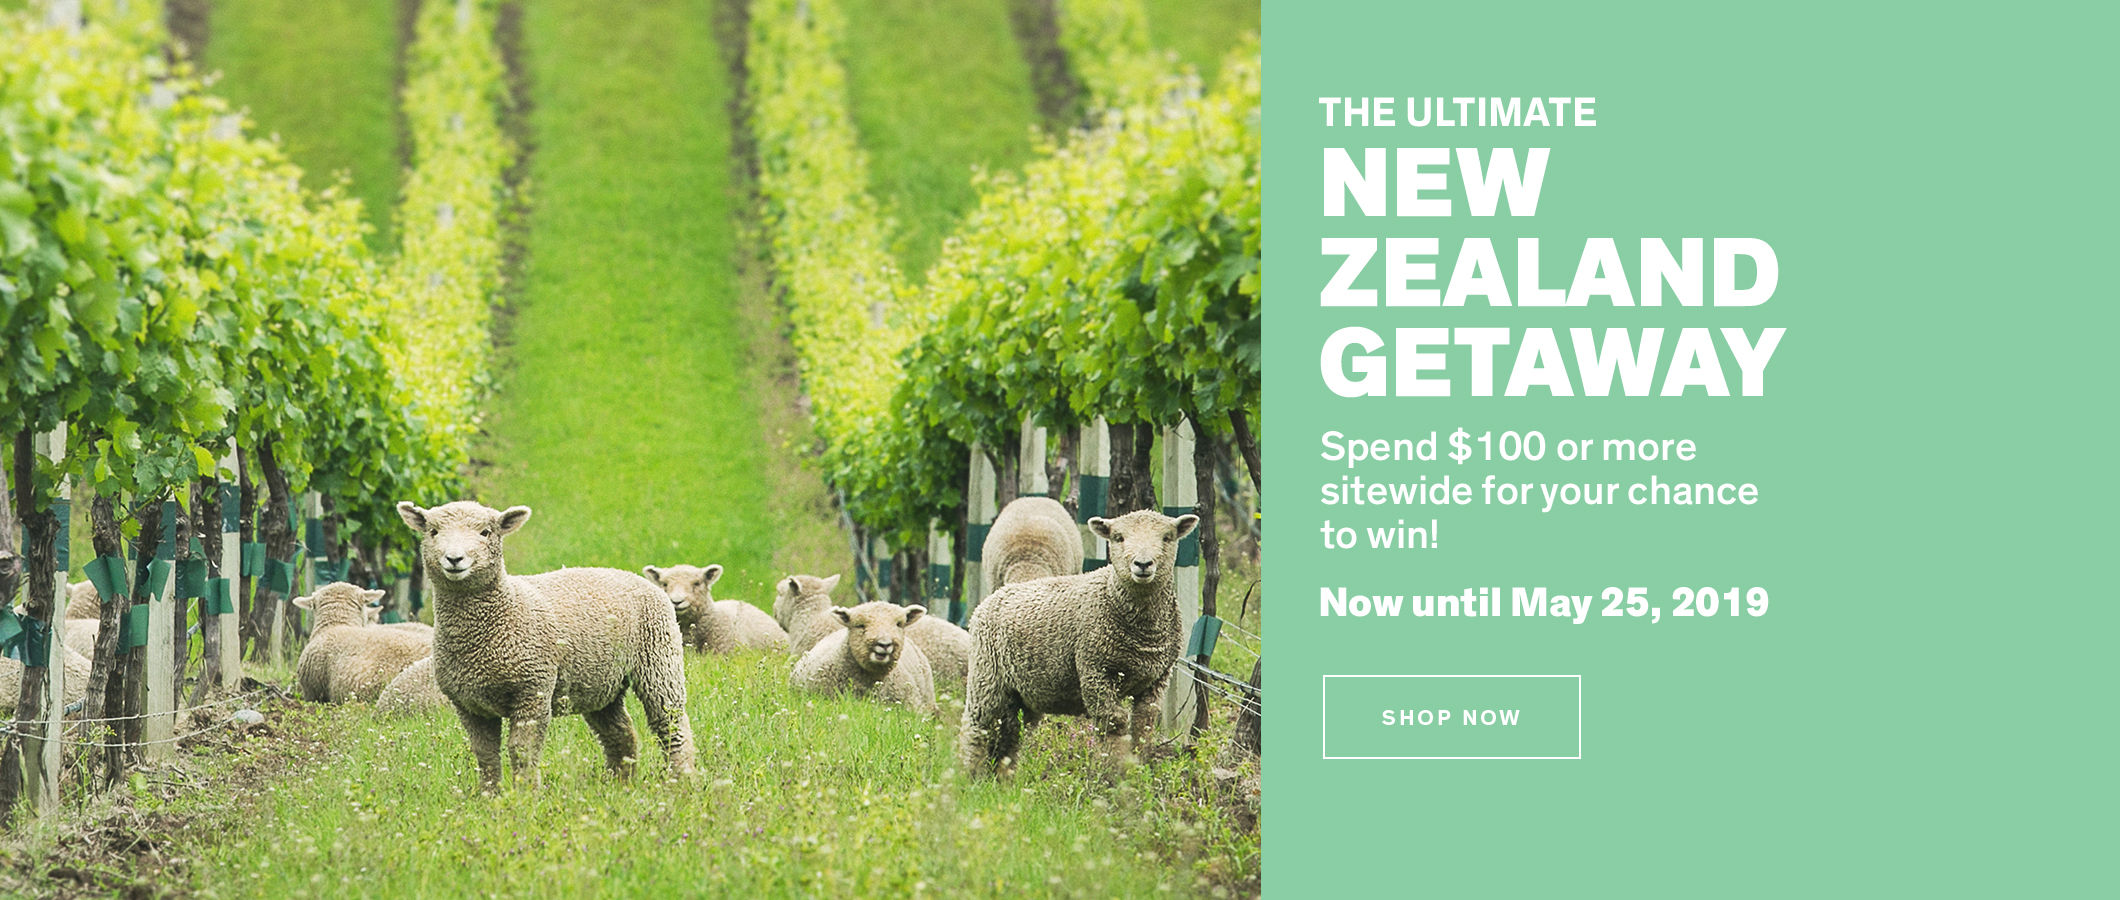 The Ultimate New Zealand Getaway. Spend $100 or more sitewide for your chance to win! Until May 25, 2019. Shop Now.